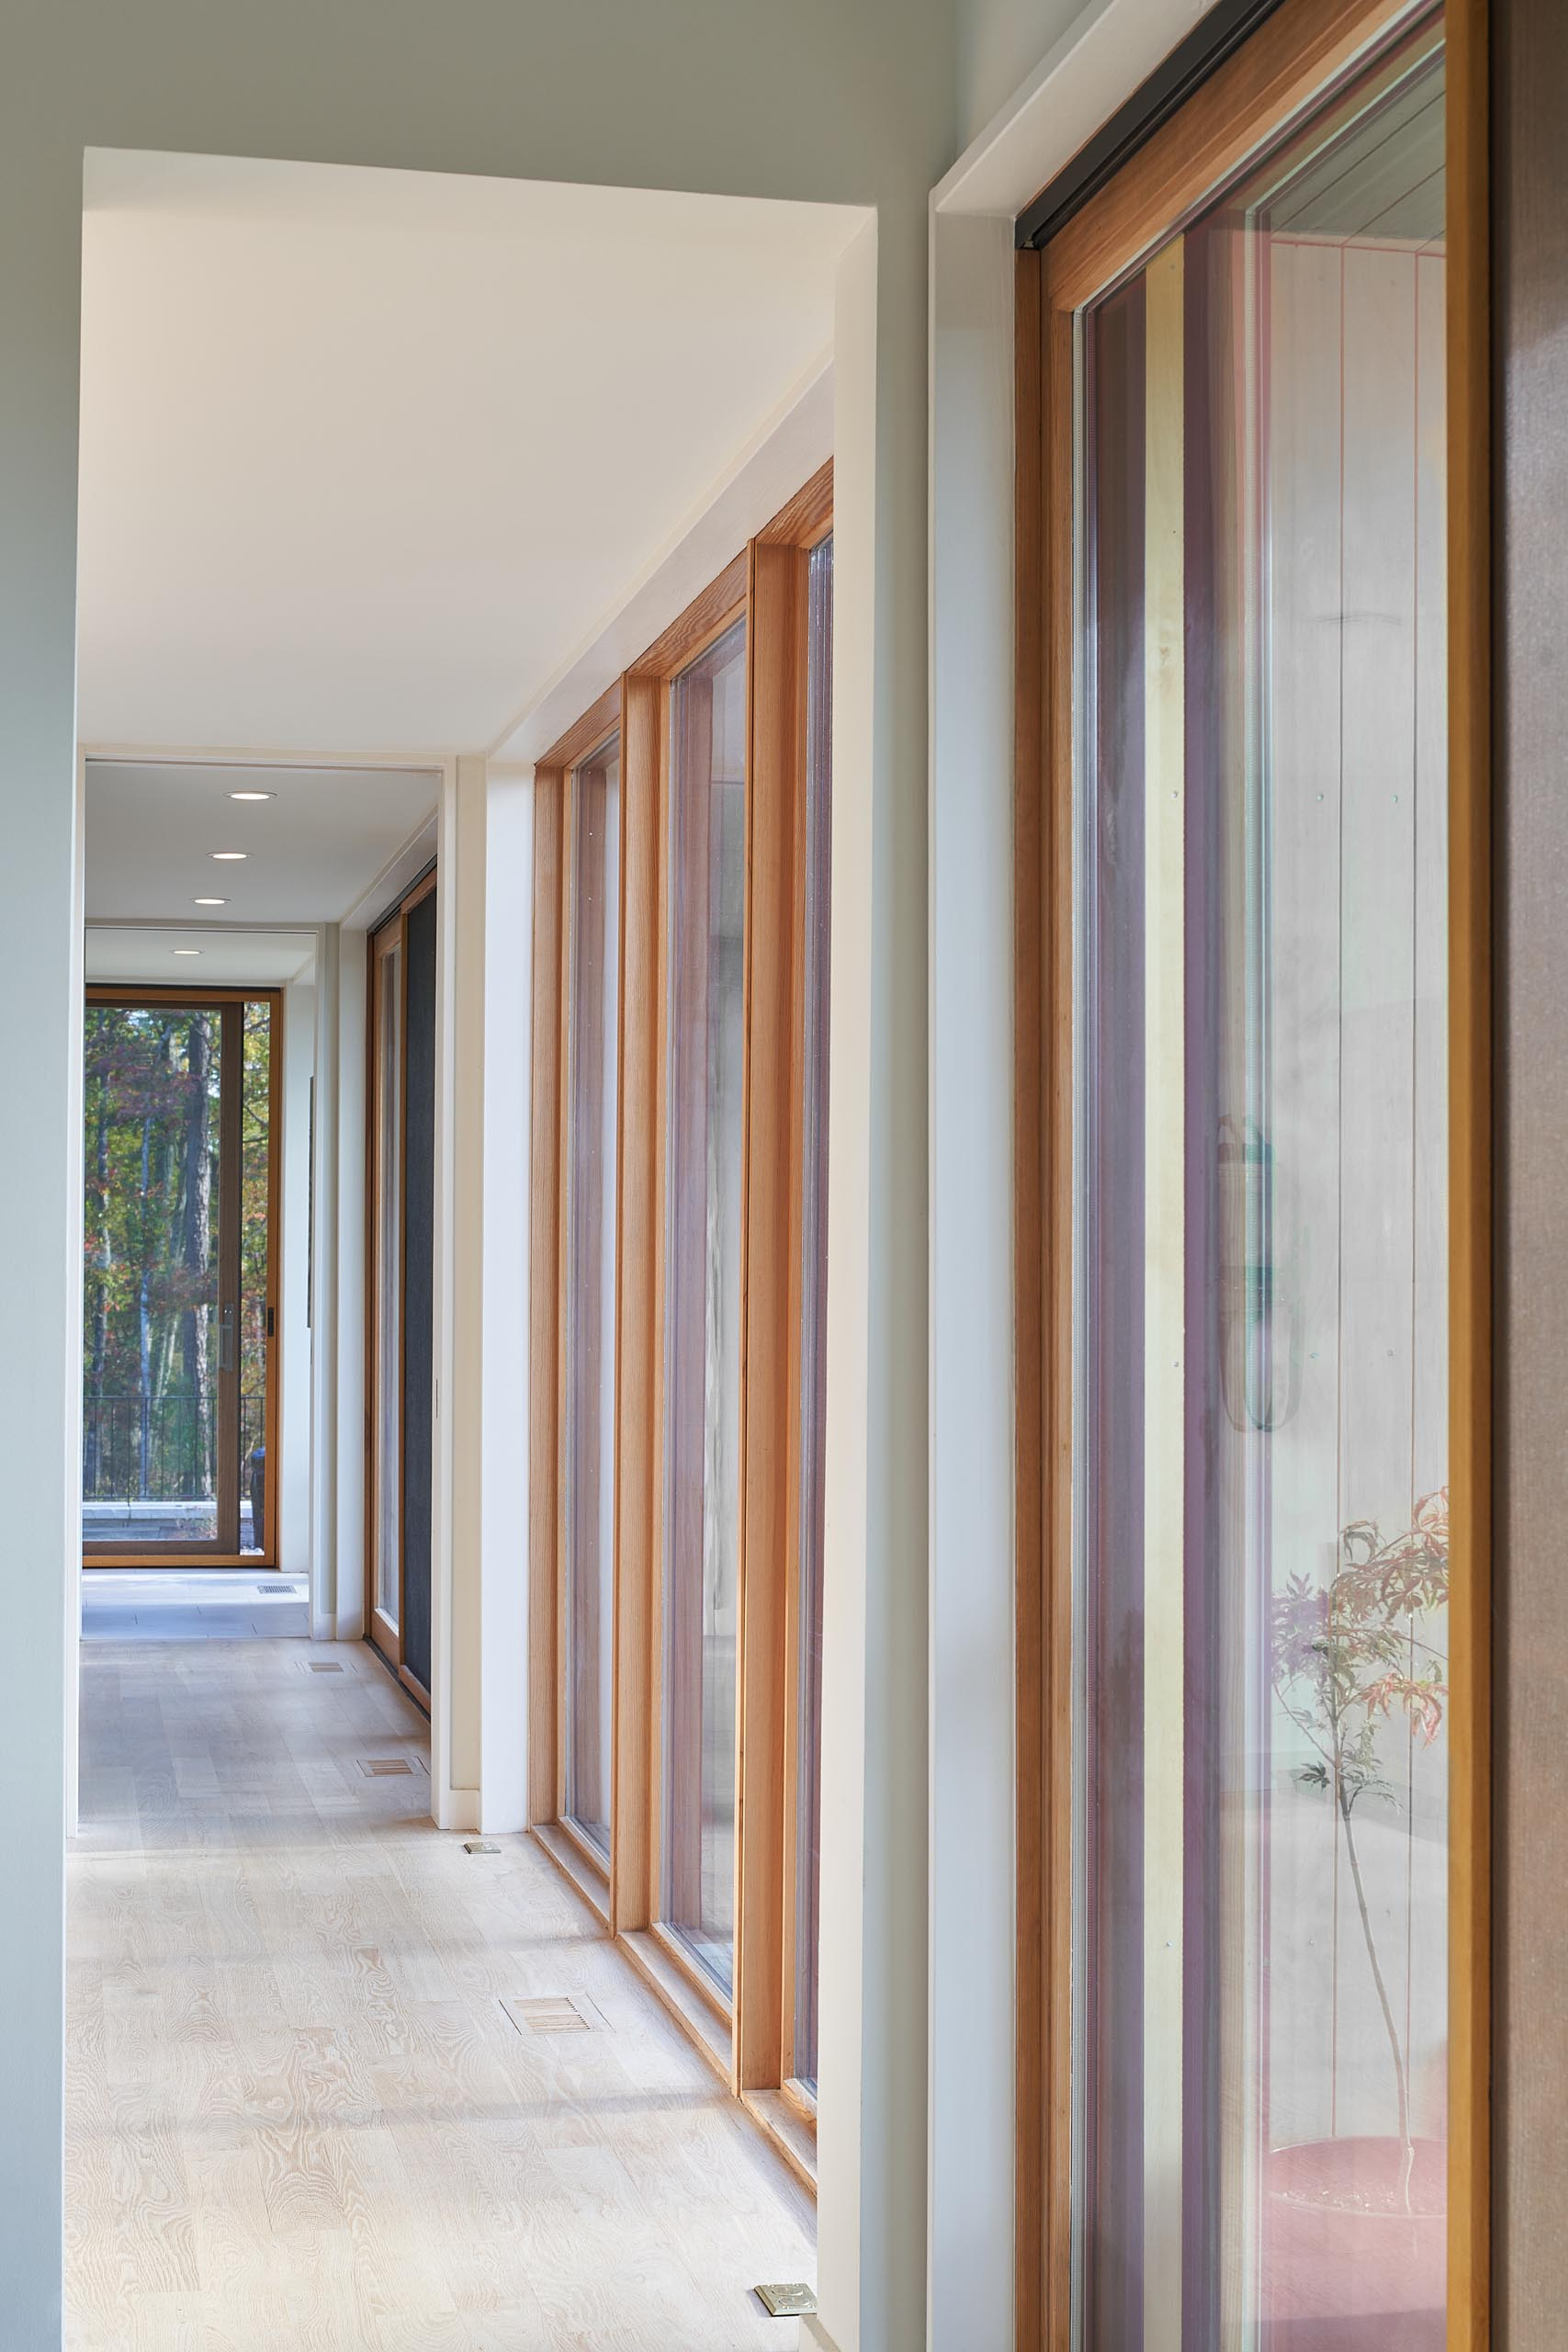 A modern hallway with large floor to ceiling windows that frame views of the trees, and create an abundance of natural light for the hallways.